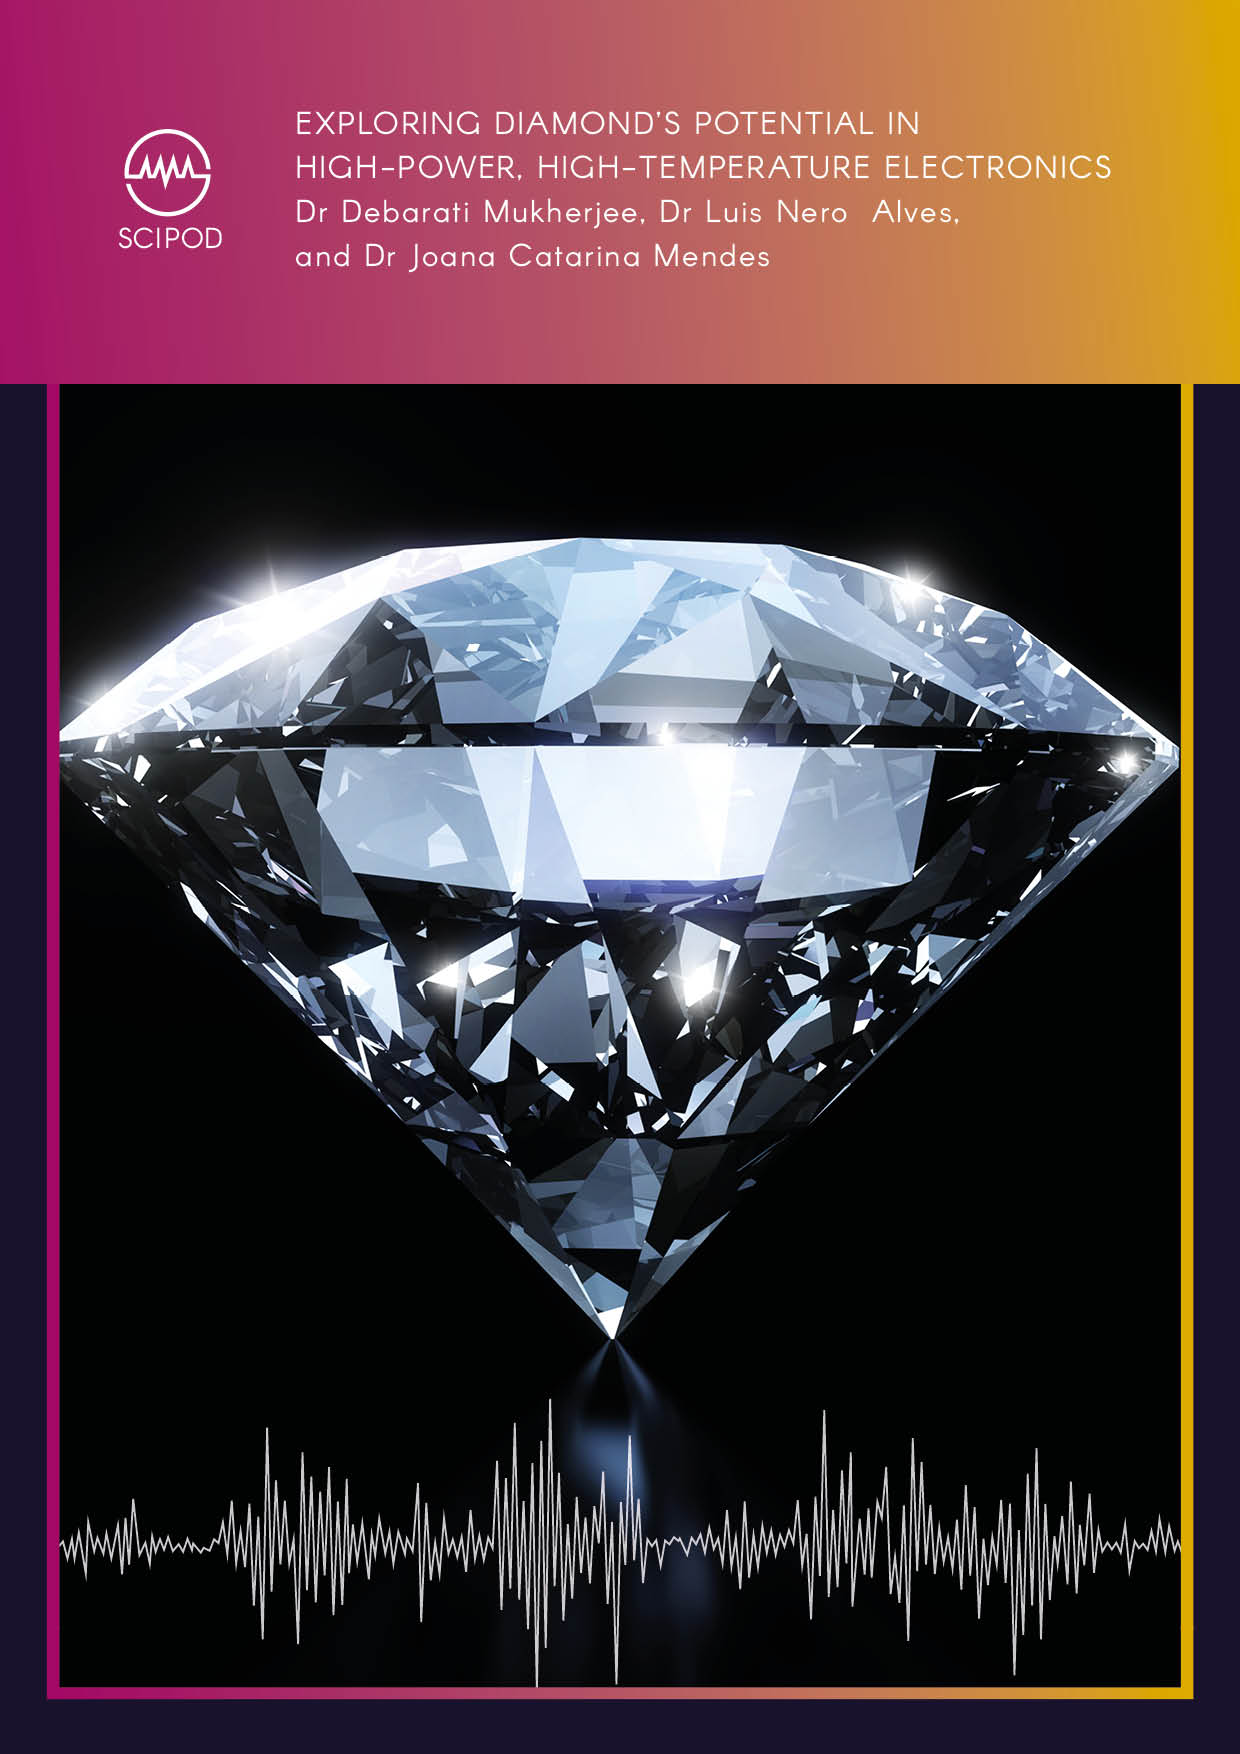 Exploring Diamond's Potential in High-Power, High-Temperature Electronics – Dr Debarati Mukherjee, Dr Luis Nero Alves, Dr Joana Catarina Mendes